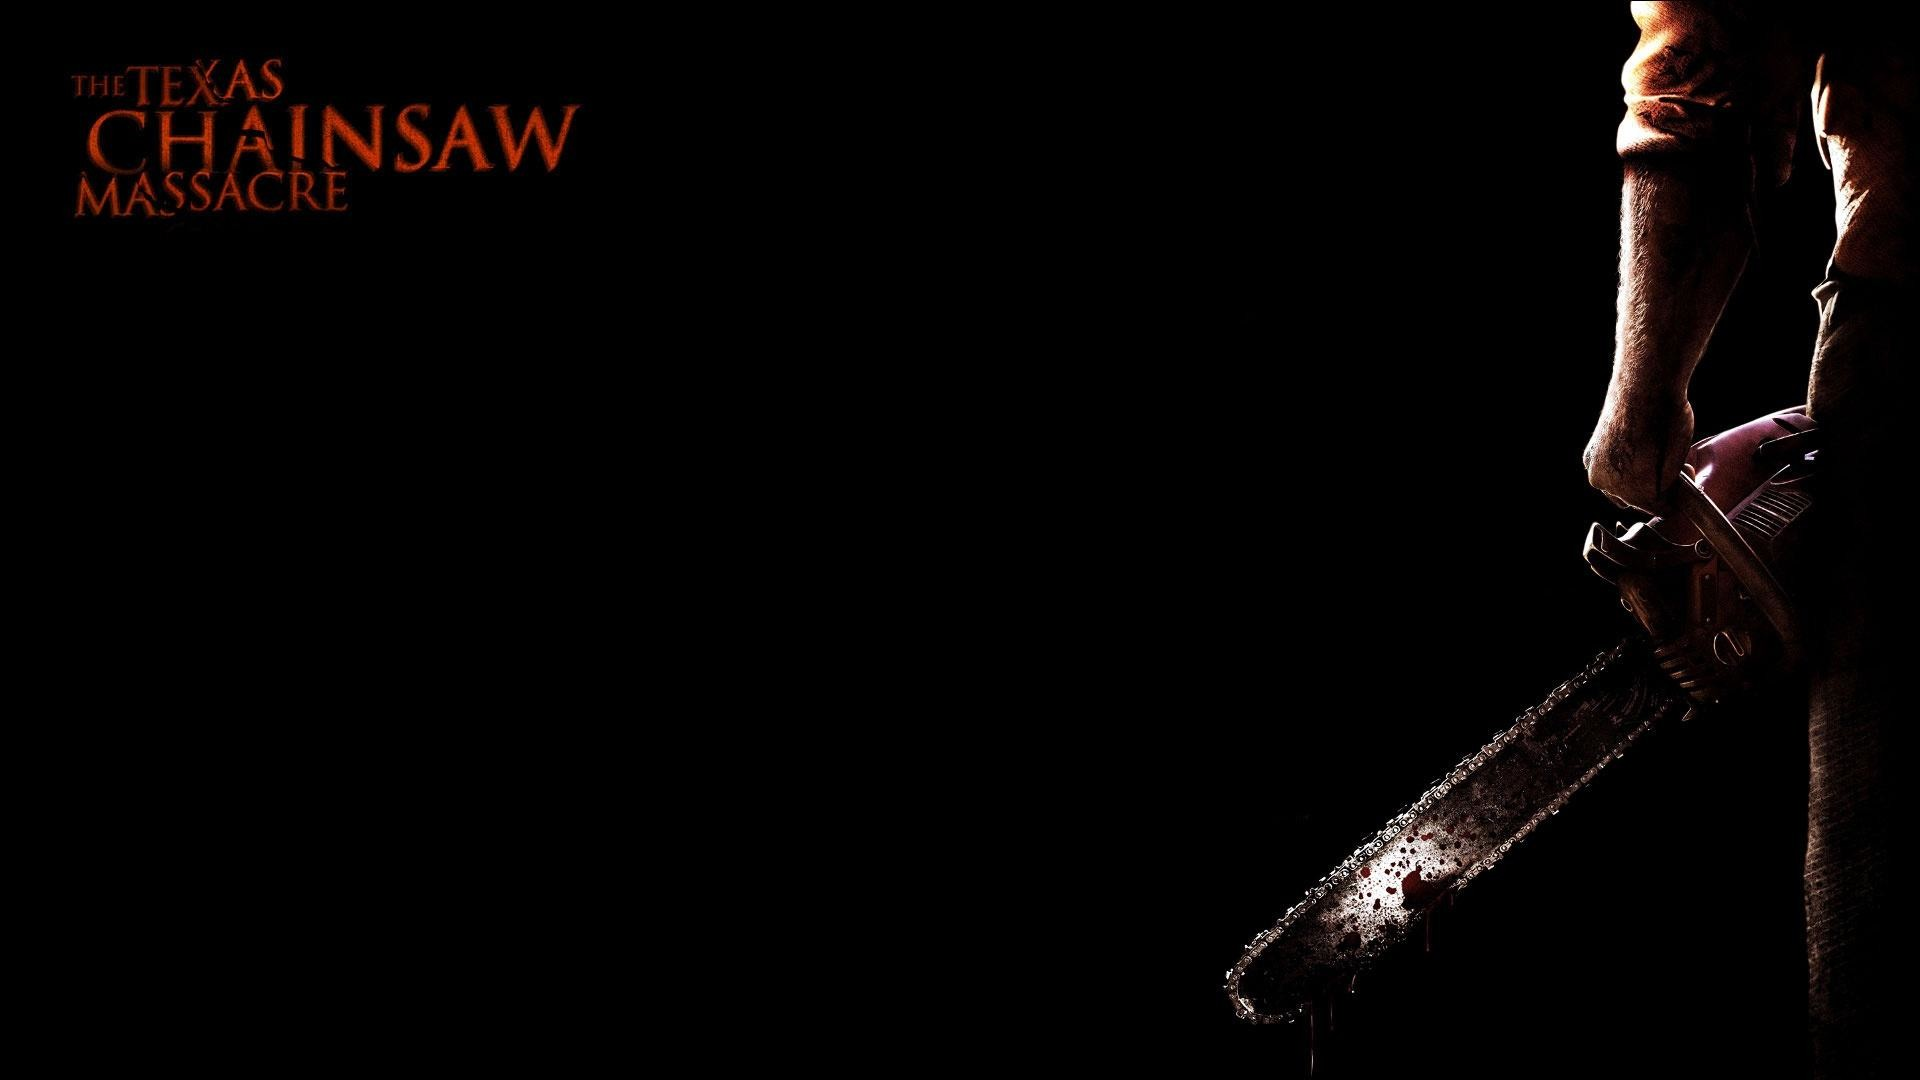 Texas Chainsaw 3D wallpapers HD